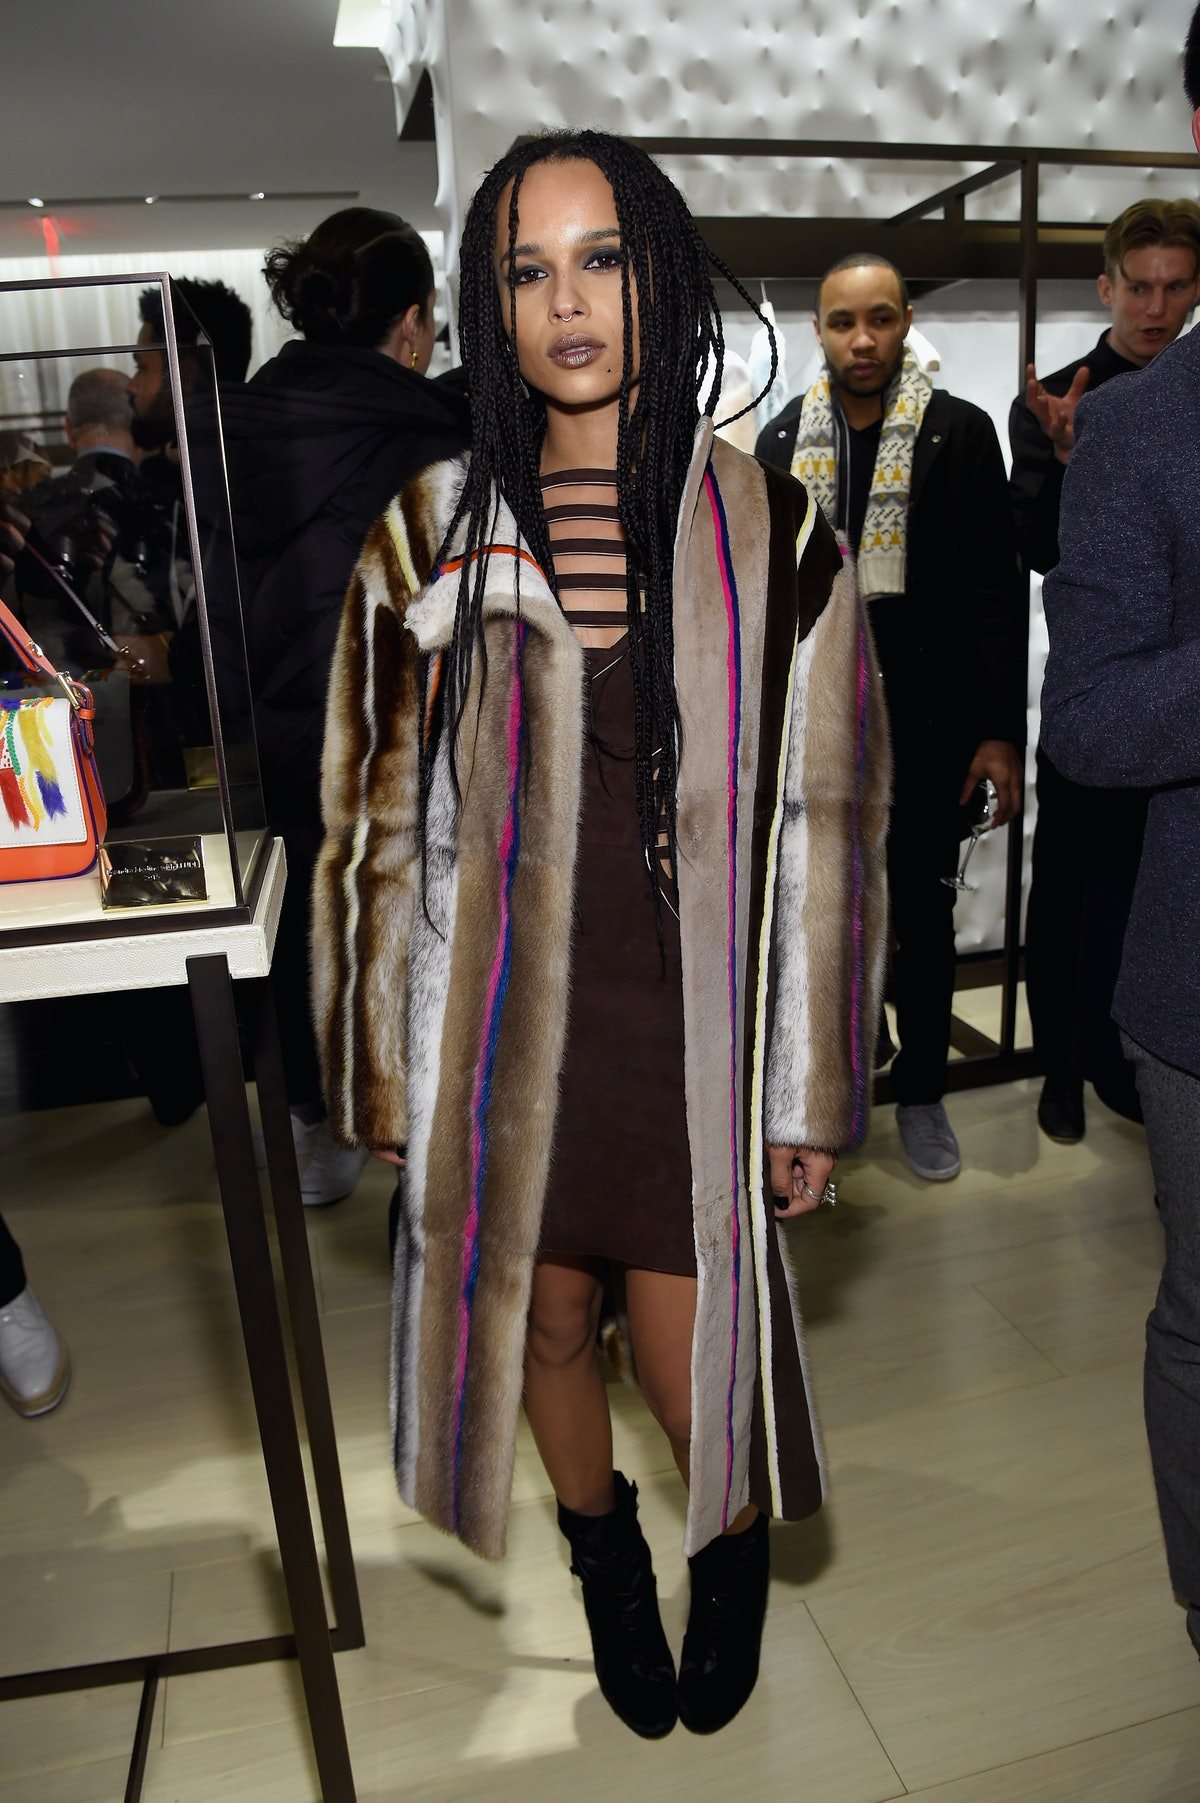 FENDI Celebrates The Opening Of The New York Flagship Store - Cocktails